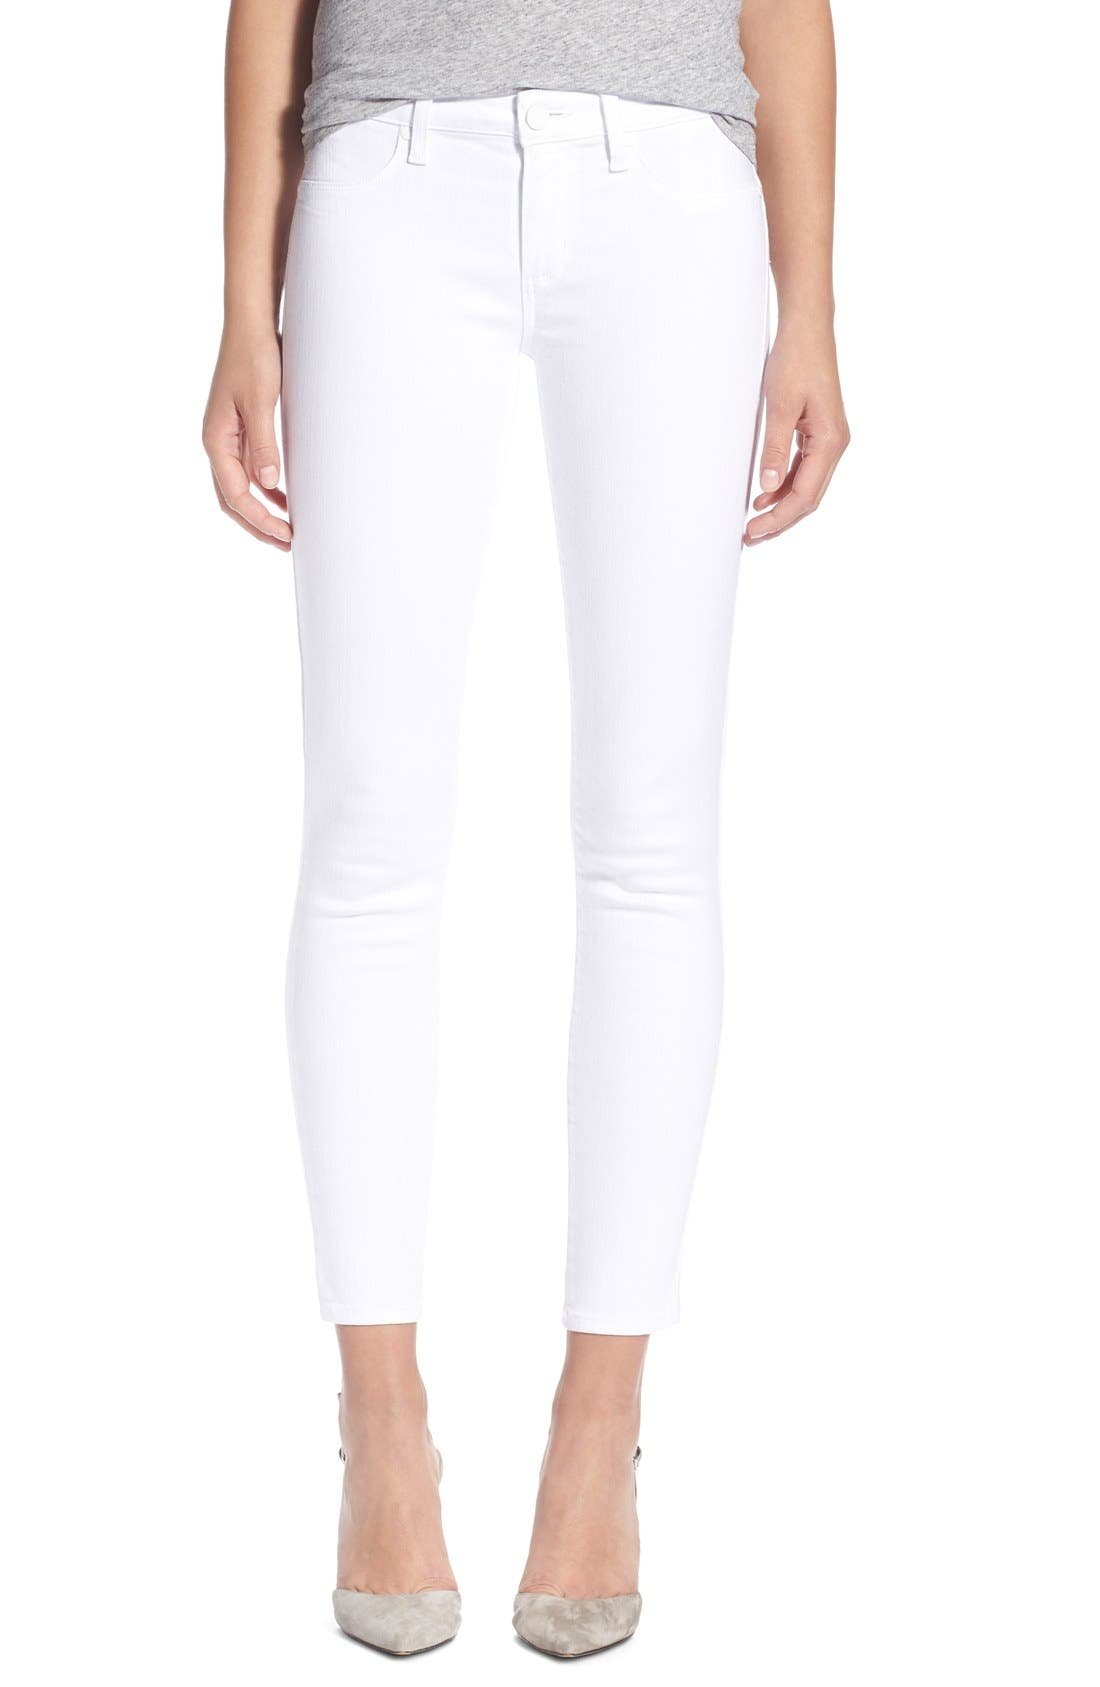 PAIGE 'Verdugo' Ankle Skinny Jeans